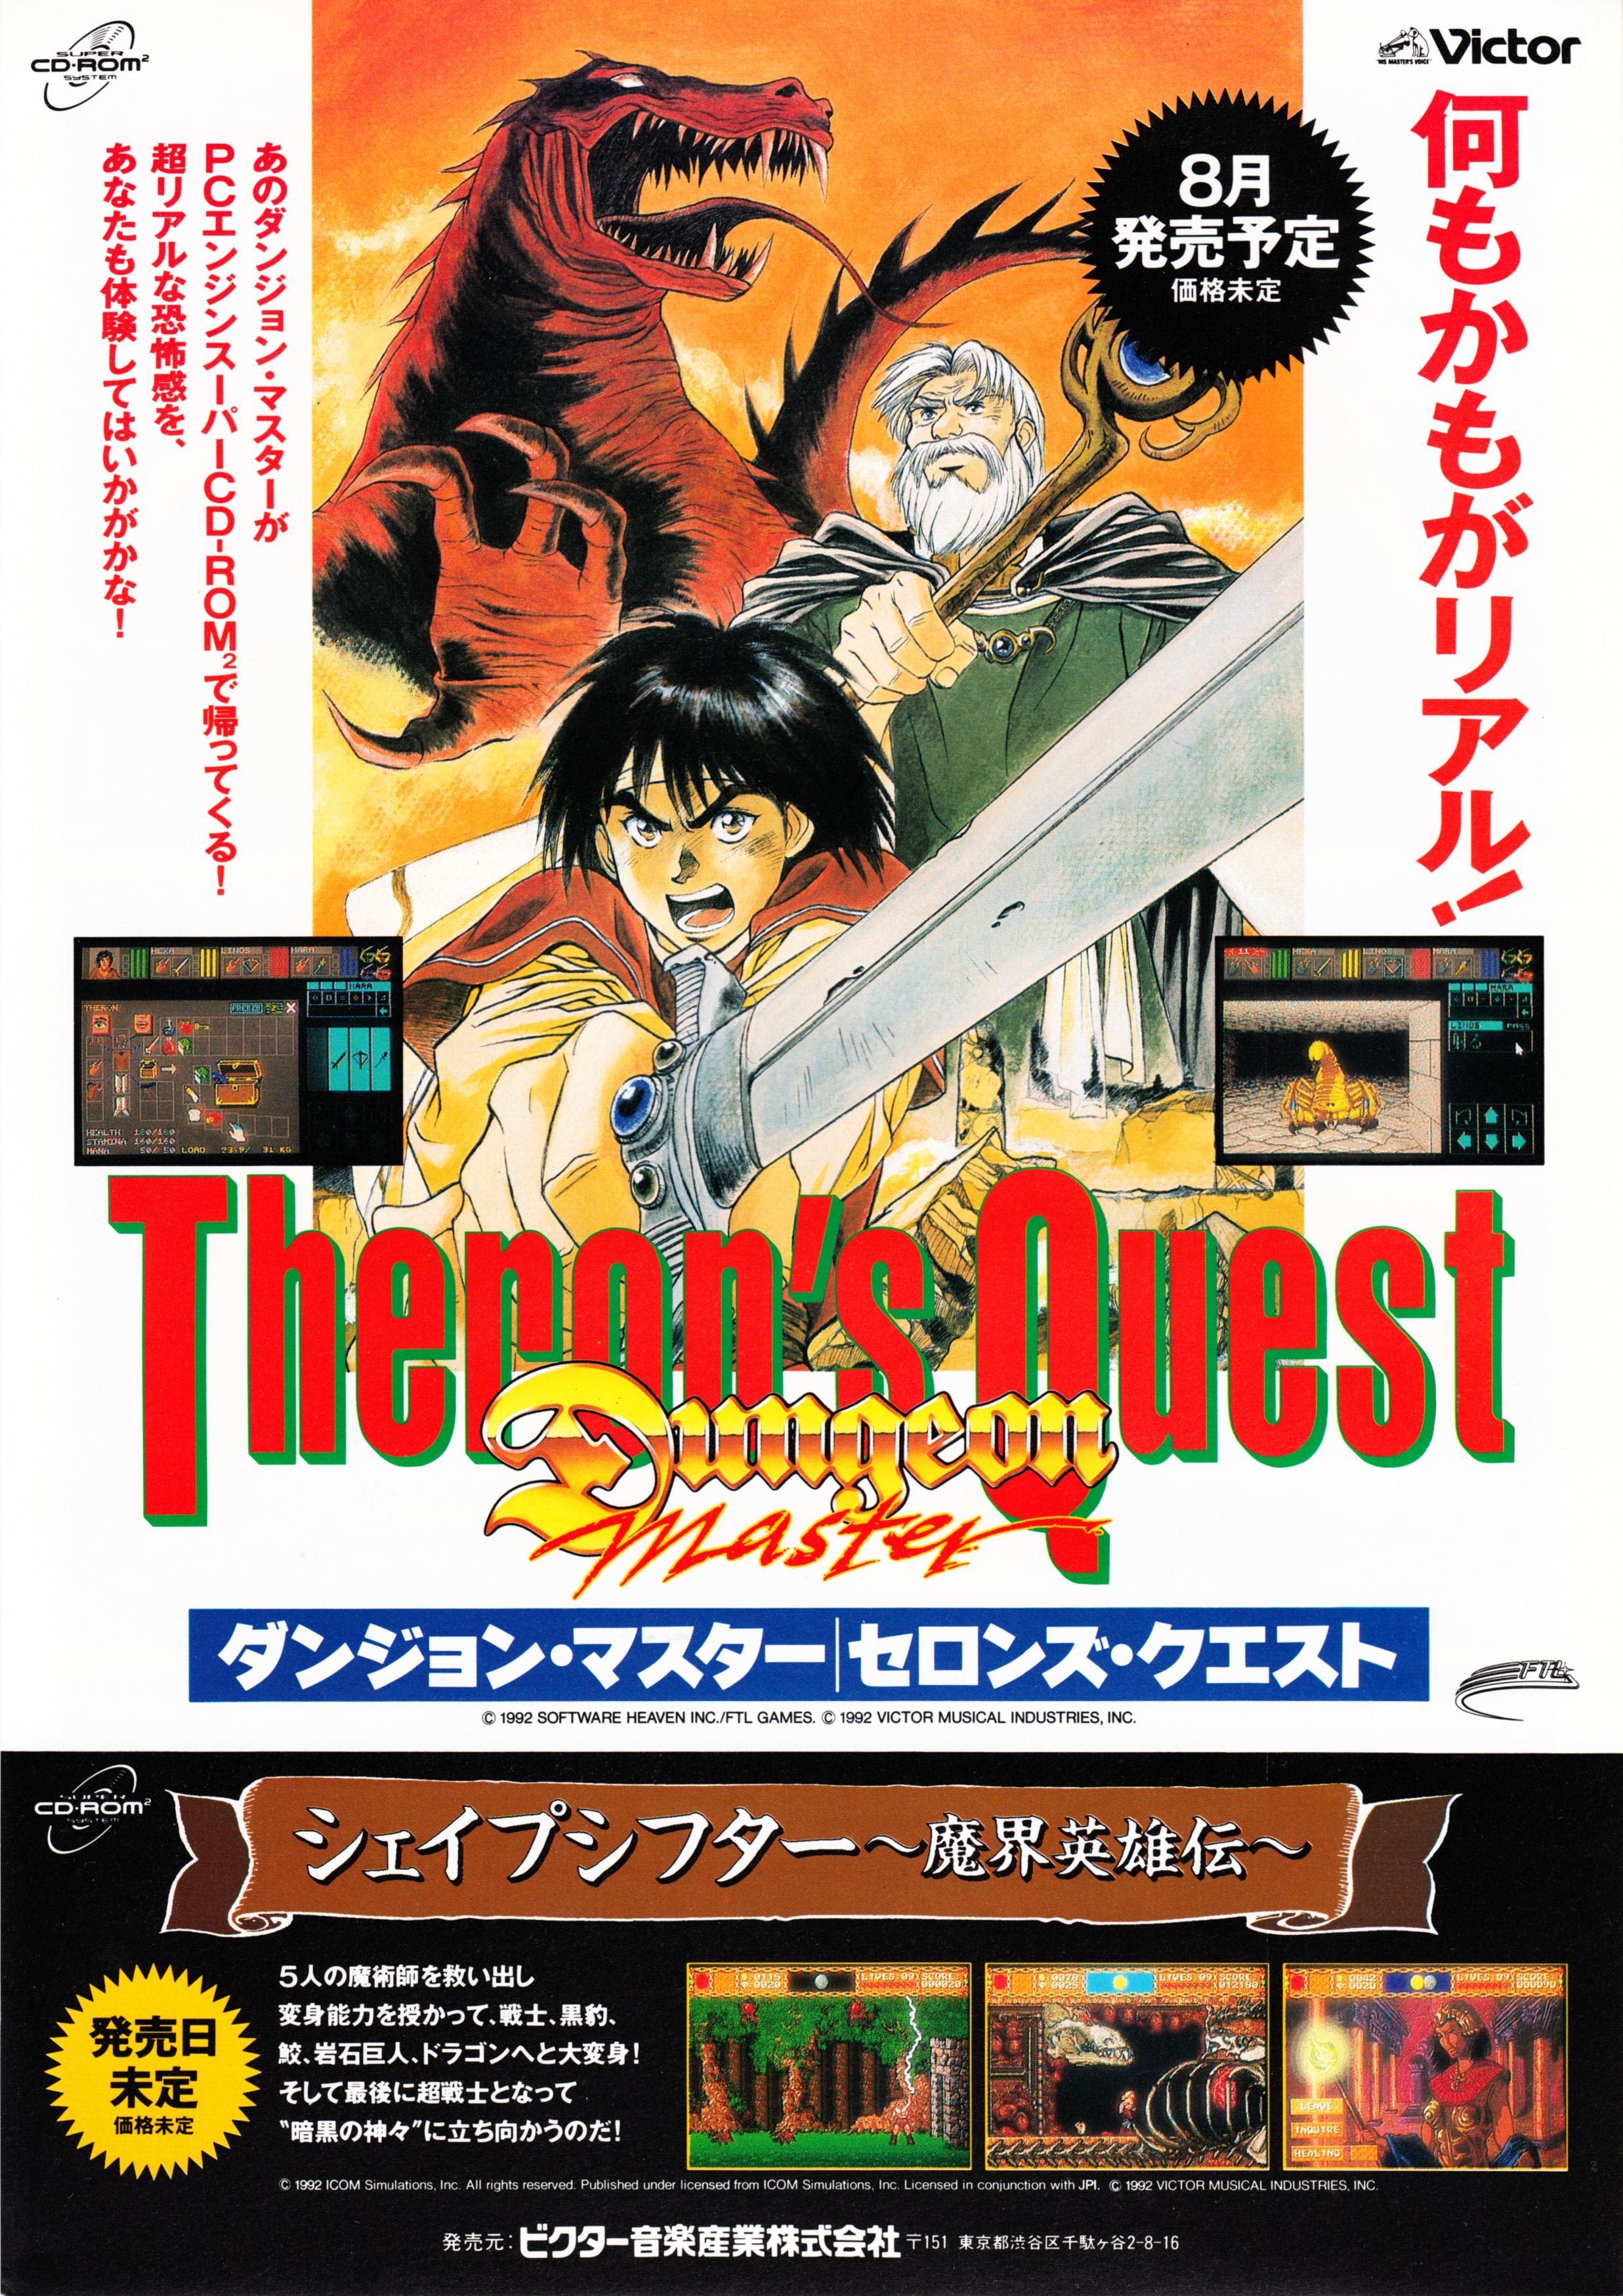 Flyer - Theron's Quest - JP - PC Engine - With Other Games - Front - Scan